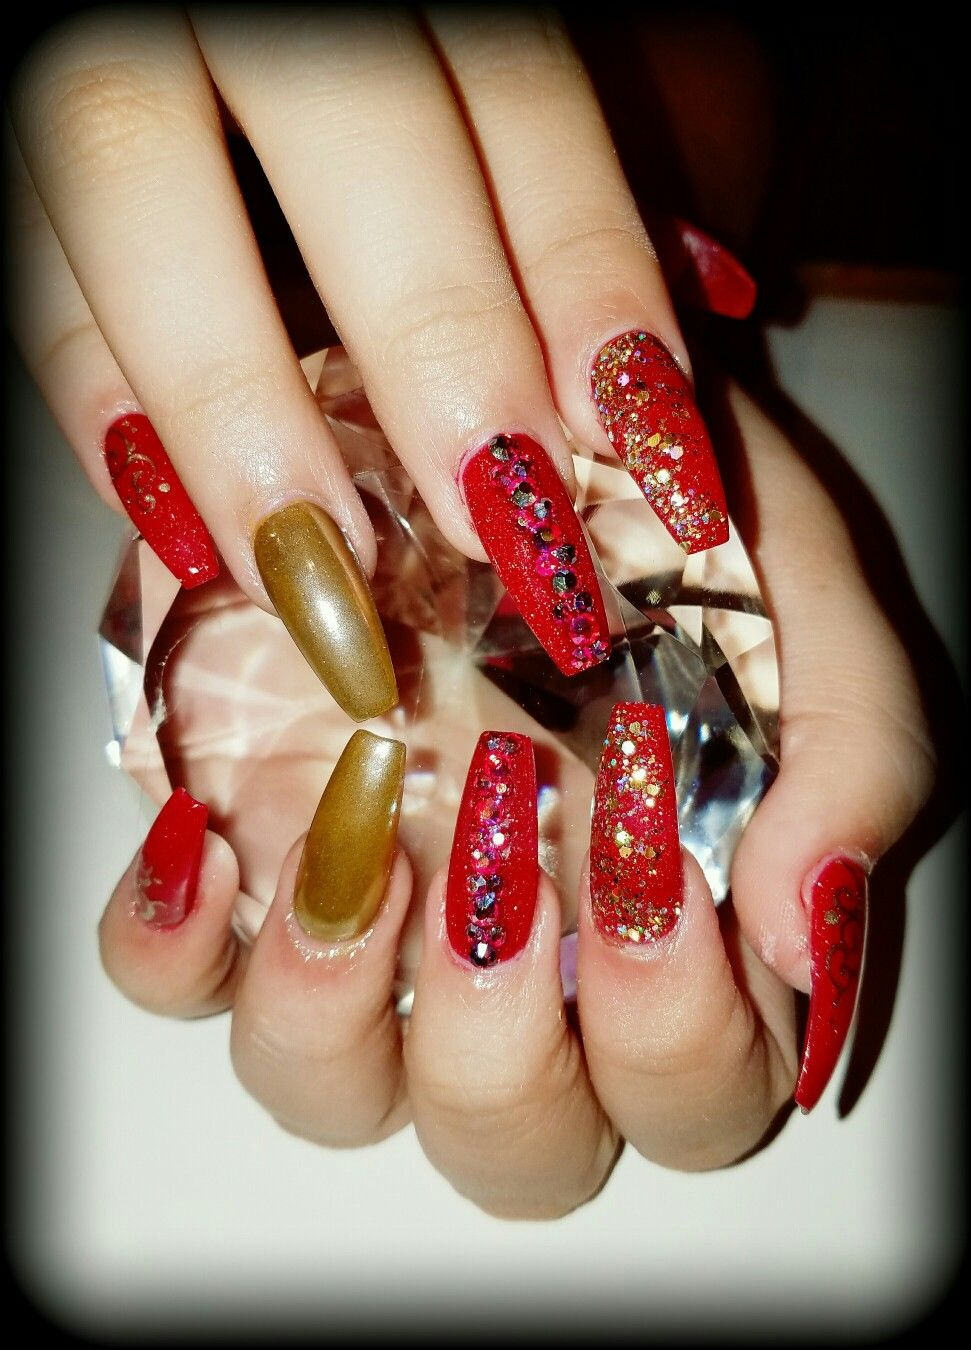 Flirtatious Nails In 2019: Red And Gold Chrome Coffin Nails